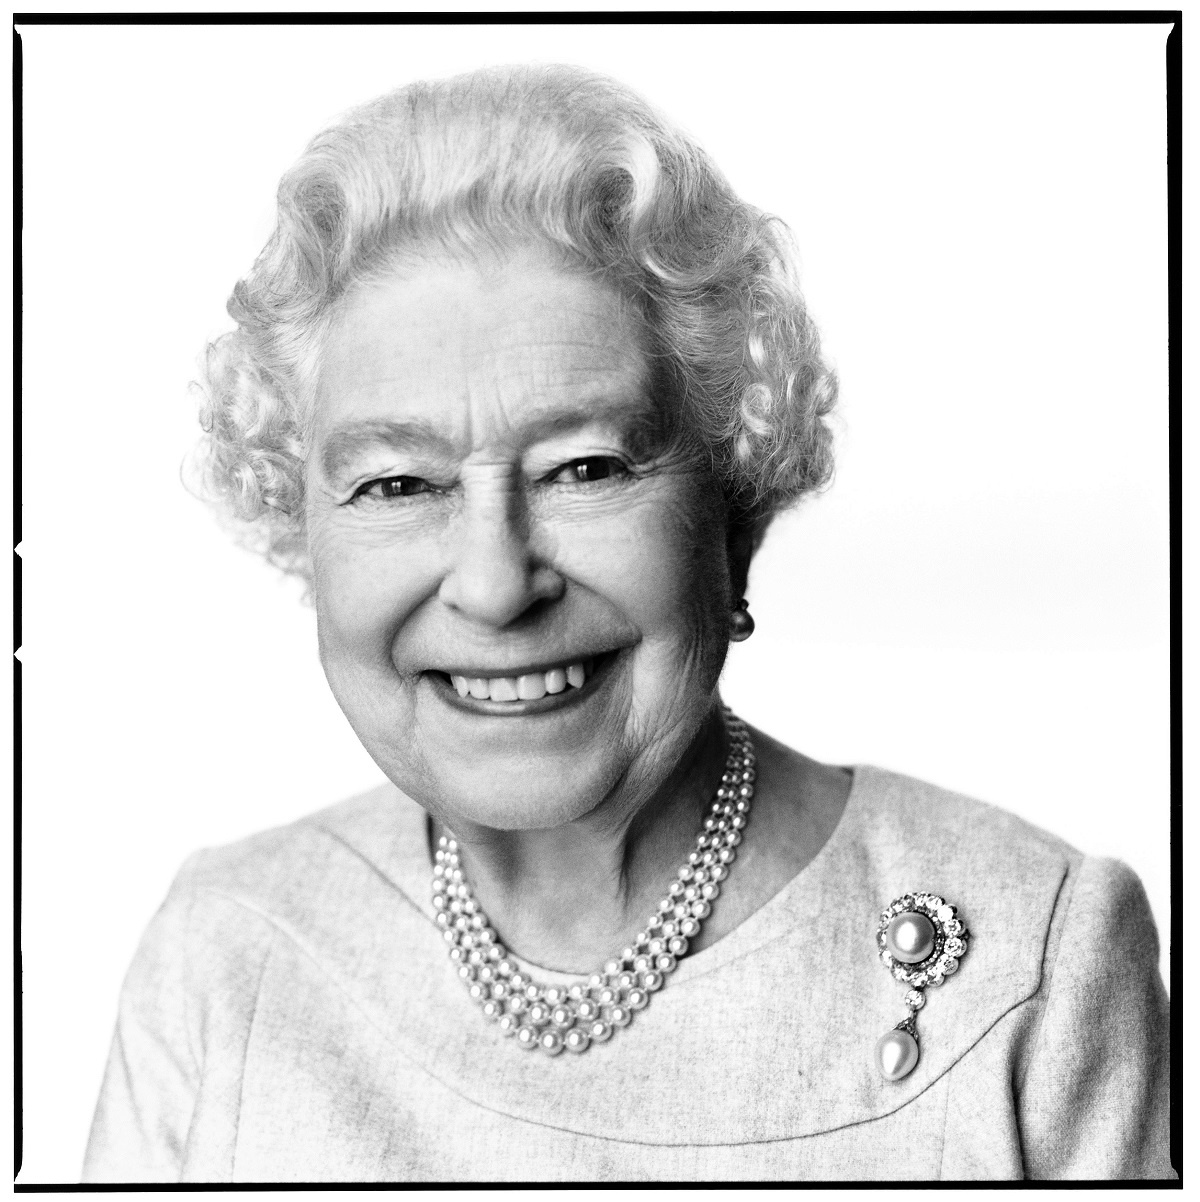 SMILING: The new portrait of the Queen by photographer David Bailey